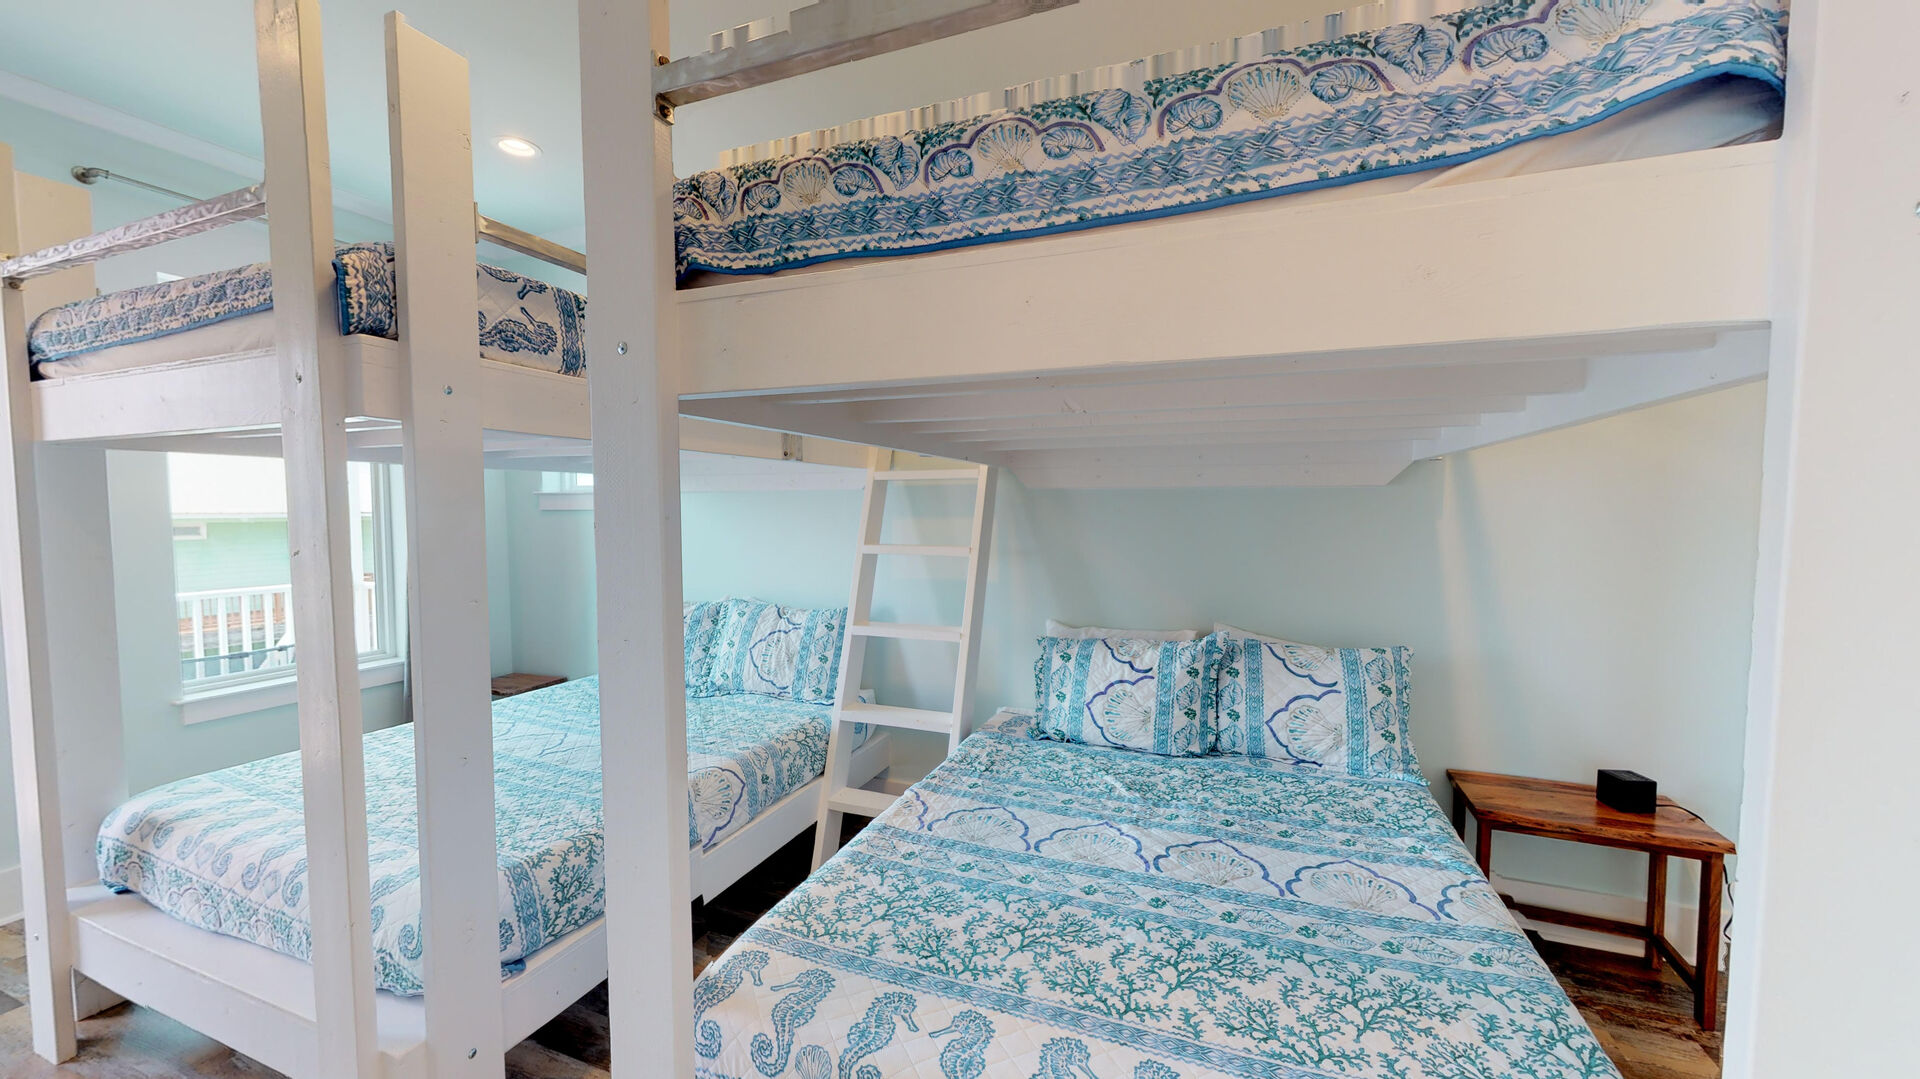 Queen bunk beds in one of this rental's bedrooms.